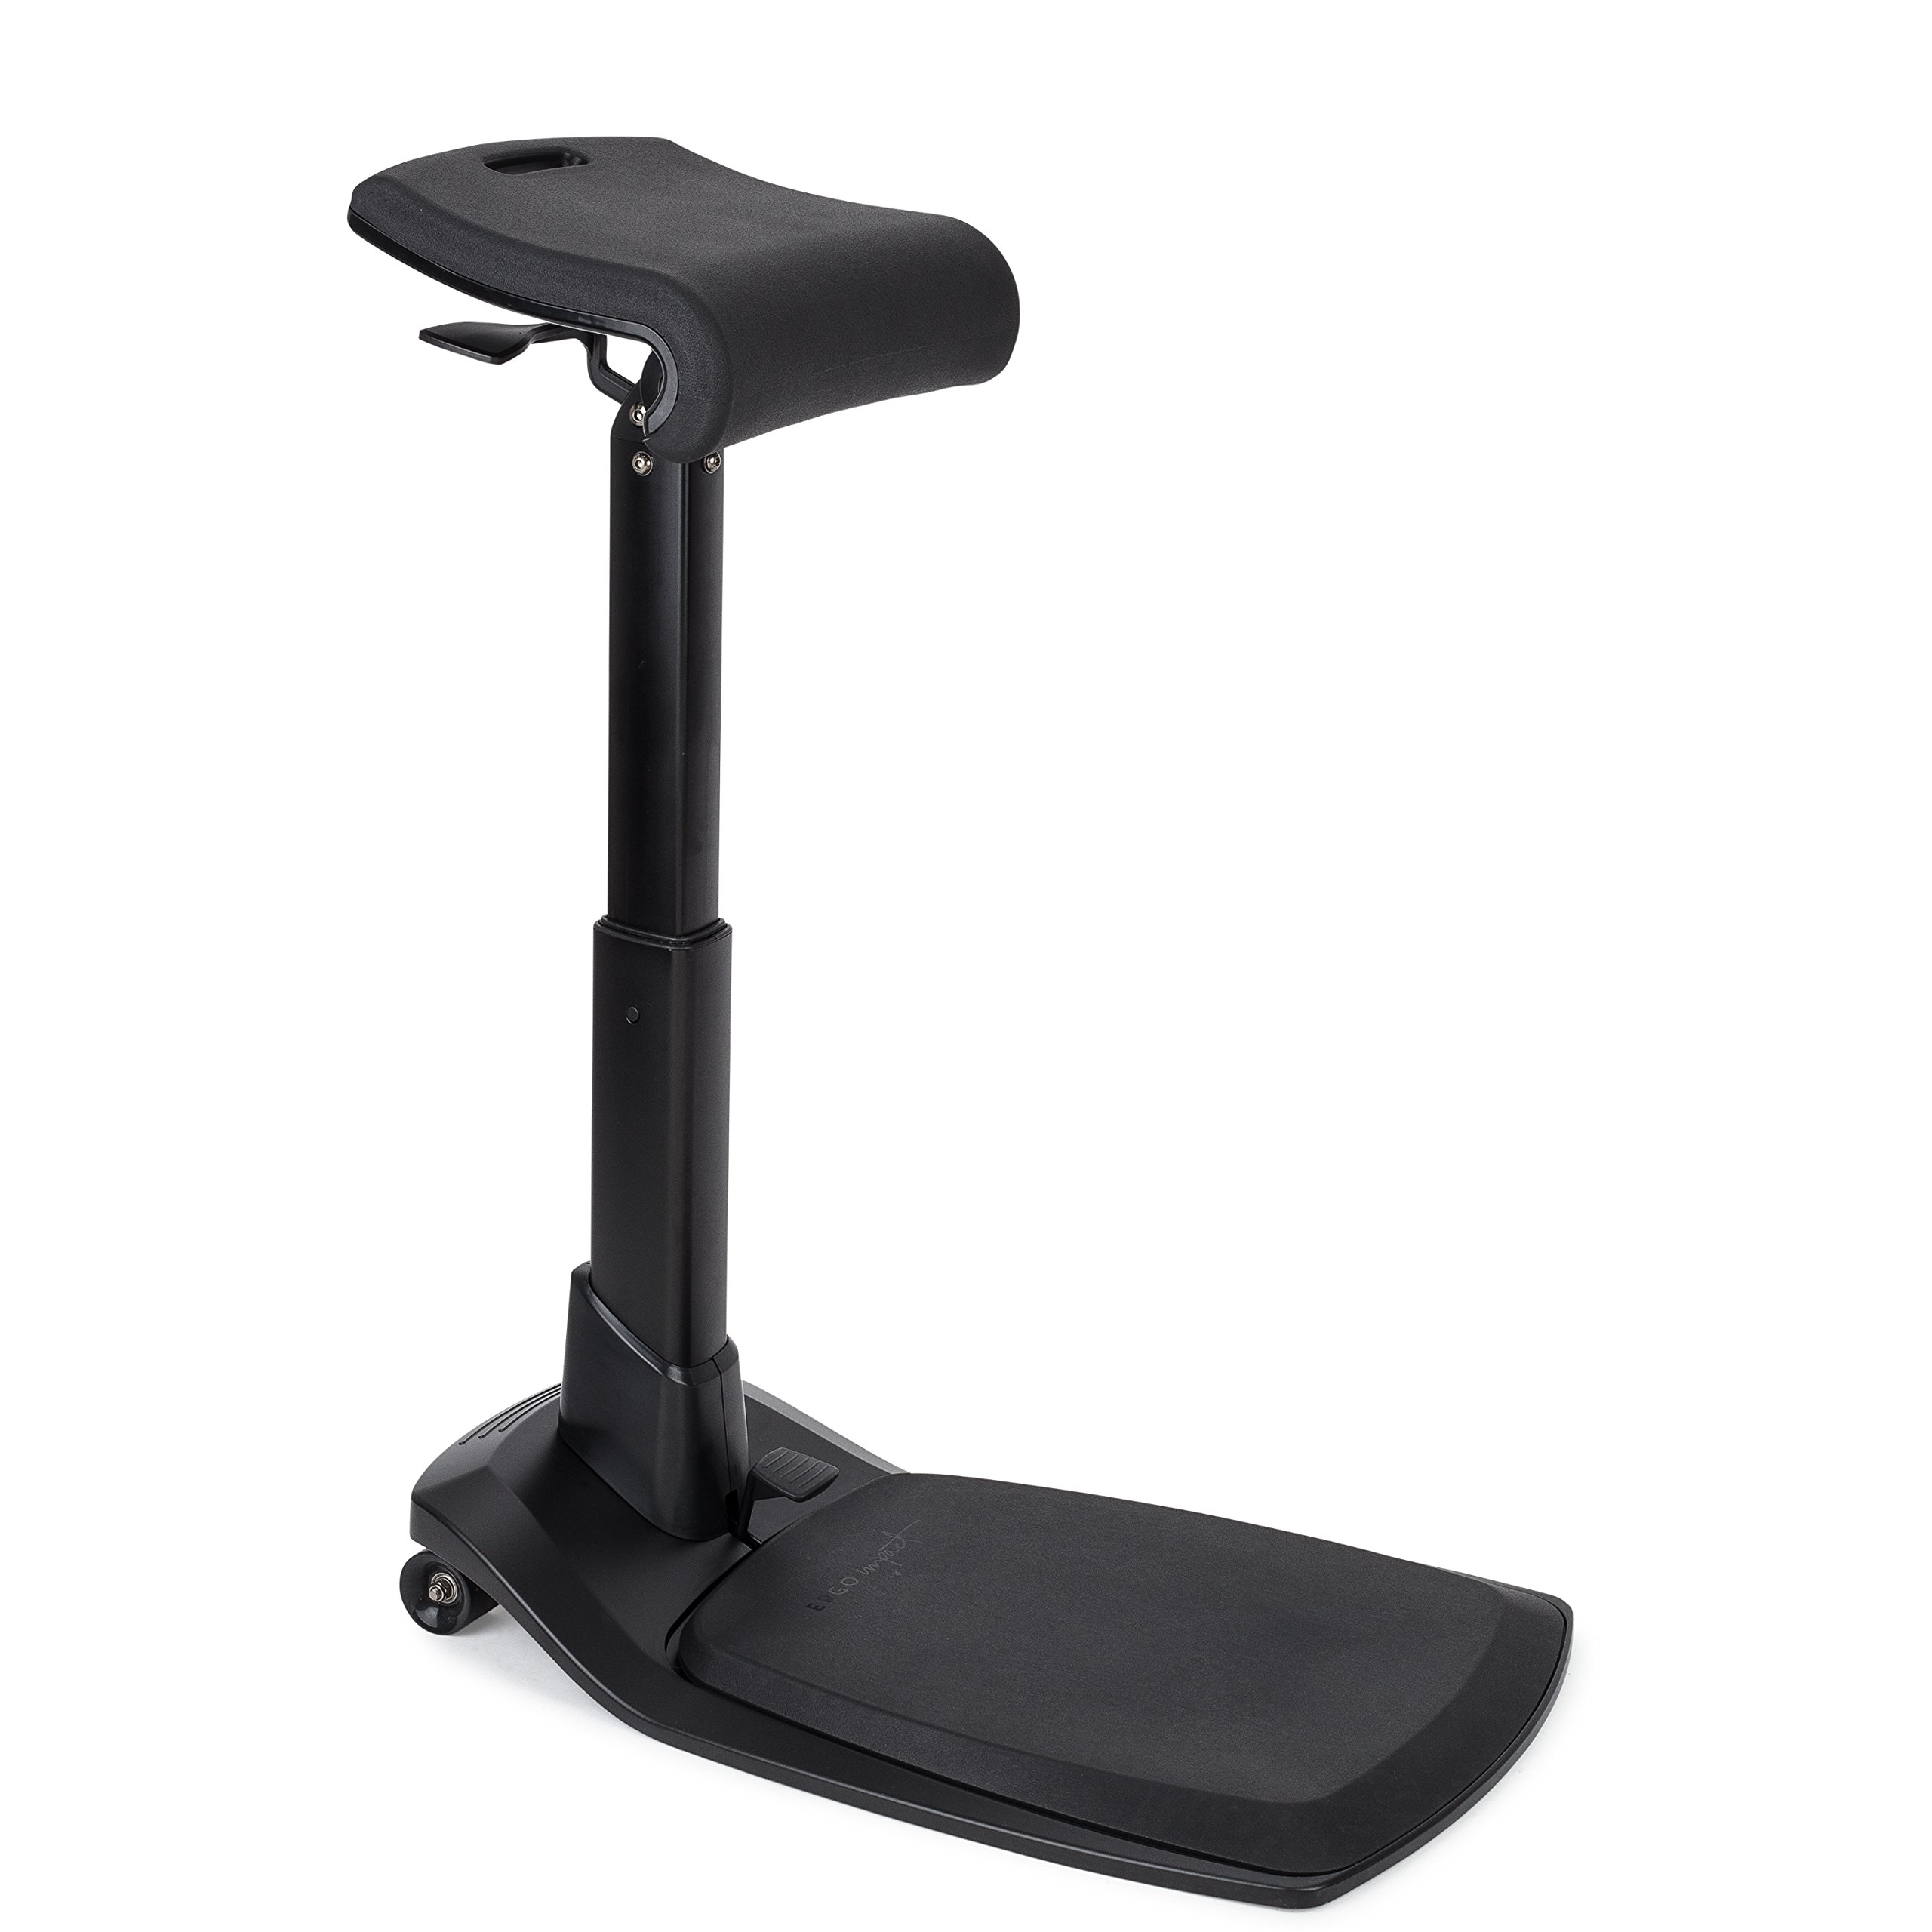 Best Standing Desk Chair for Leaning and Posture LeanRite Elite Ergonomic Back Pain Relief Includes Anti Fatigue mat (30 Day Satisfaction Guarantee)